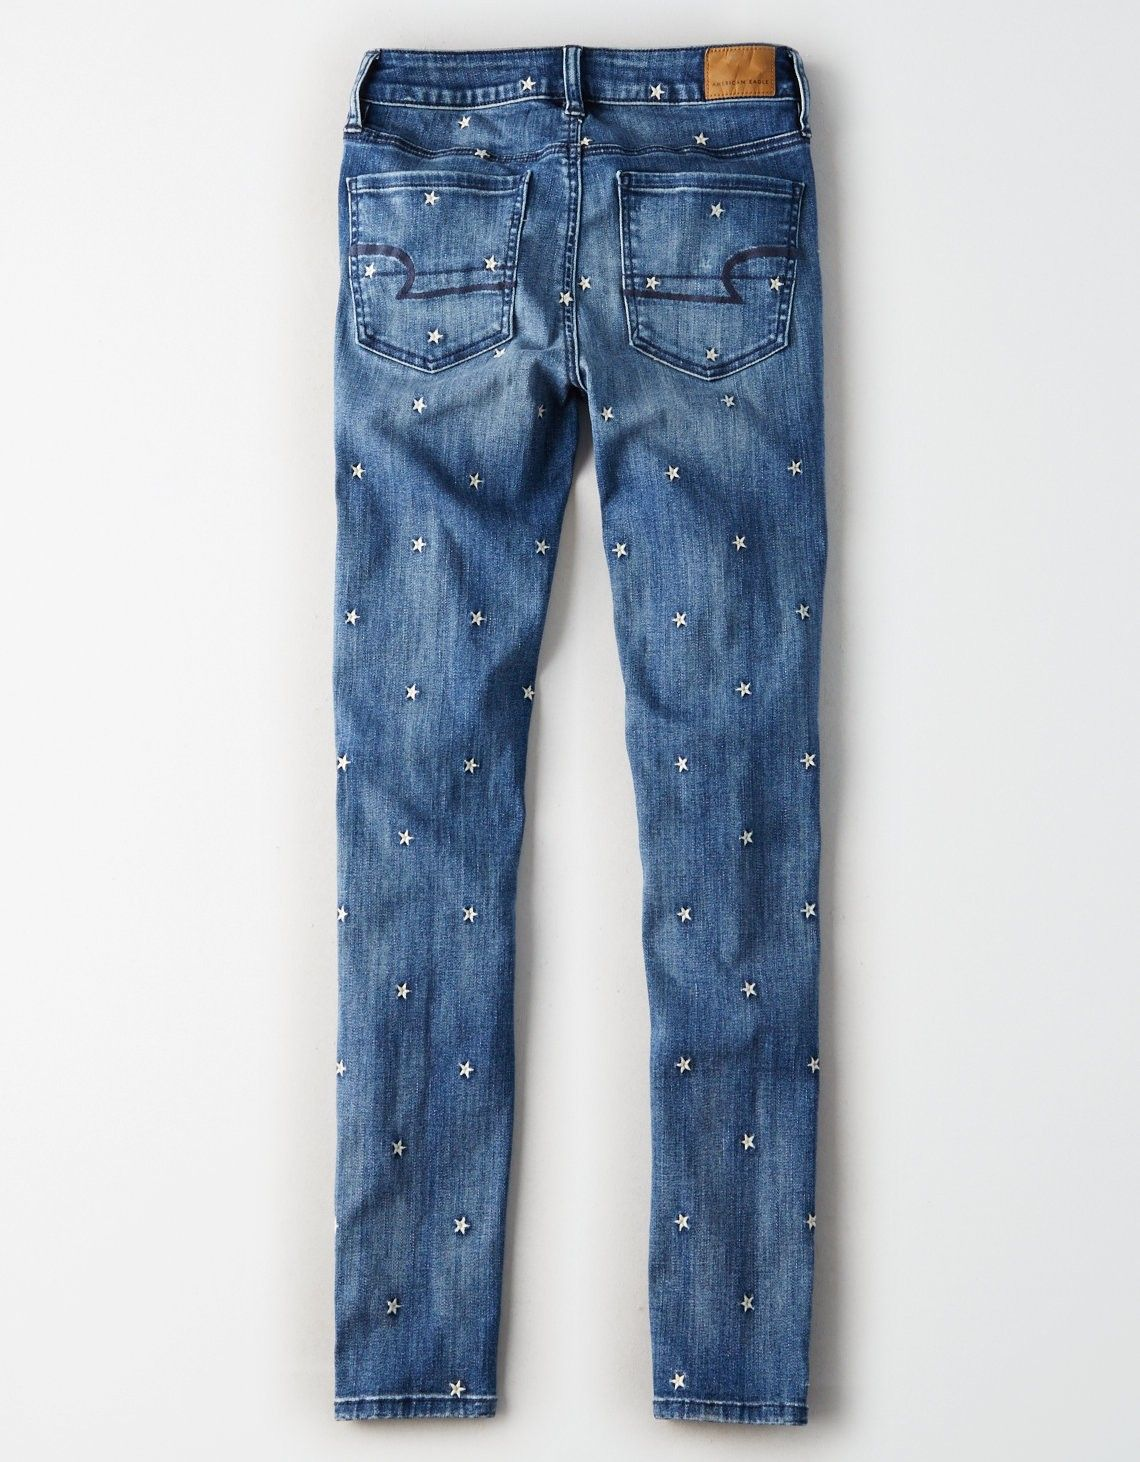 Details about american eagle womenus jegging high waisted